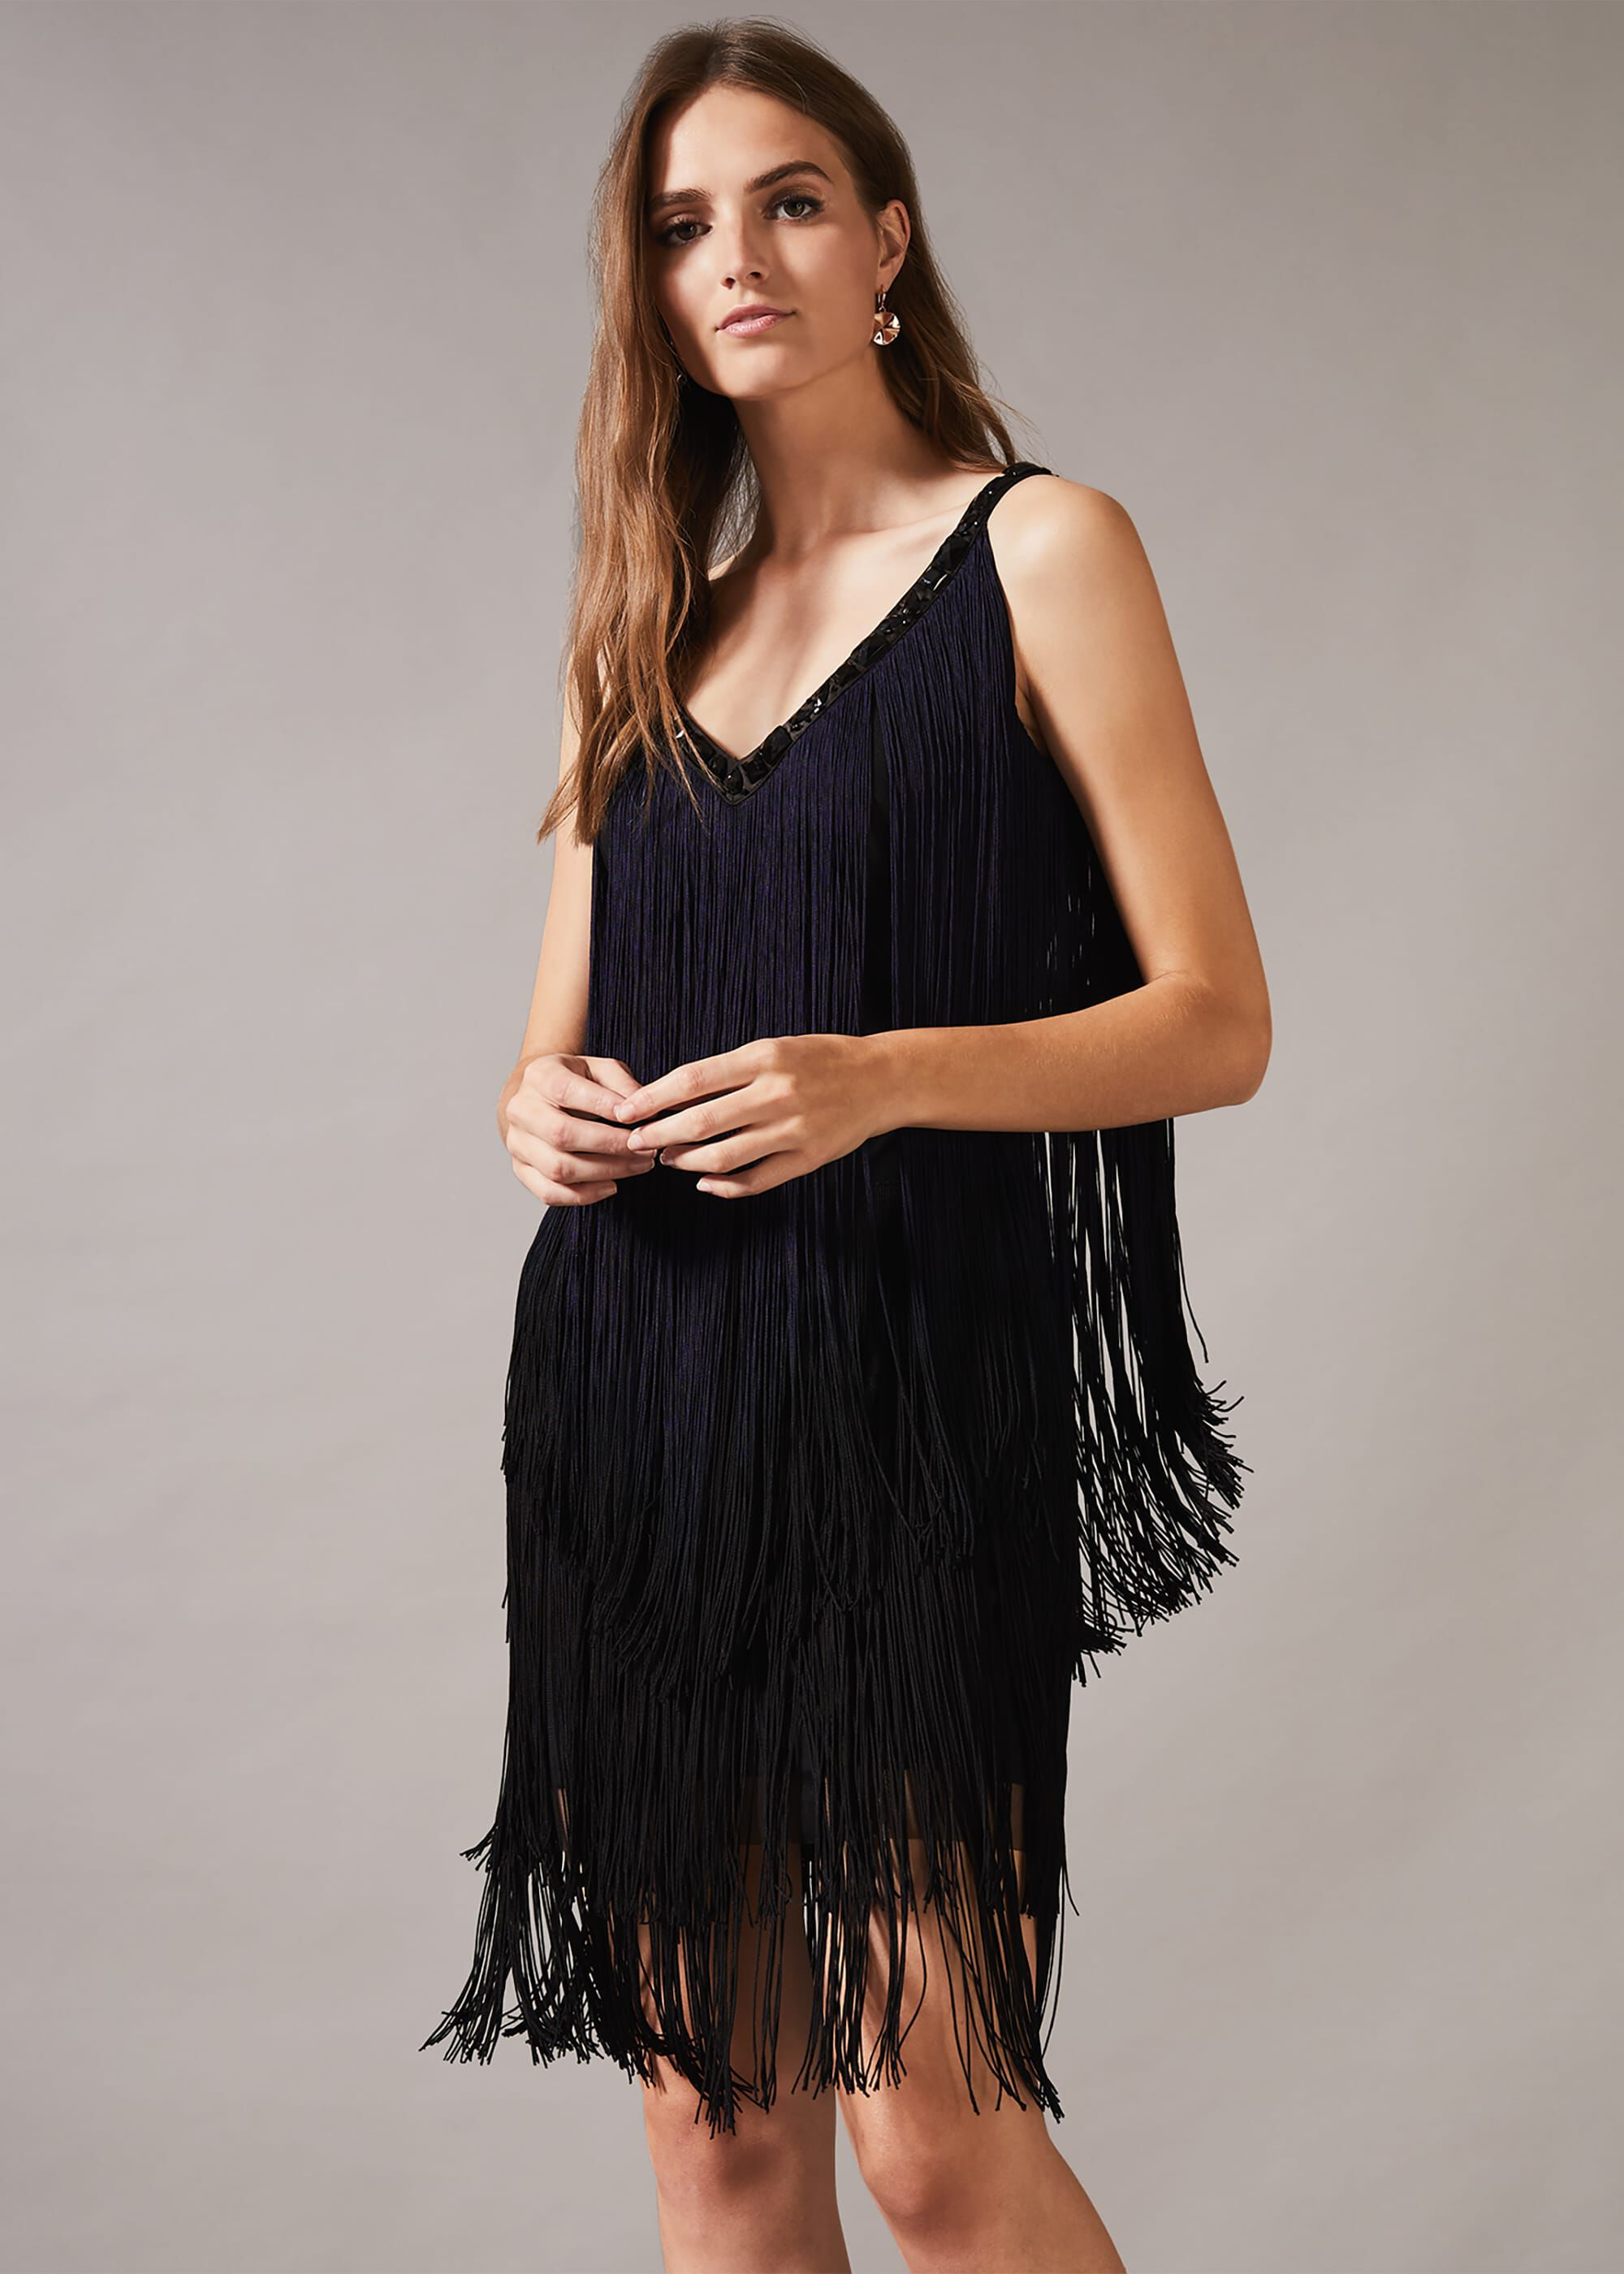 Phase Eight Missy Dip Dye Fringe Dress, Blue, Shift, Occasion Dress